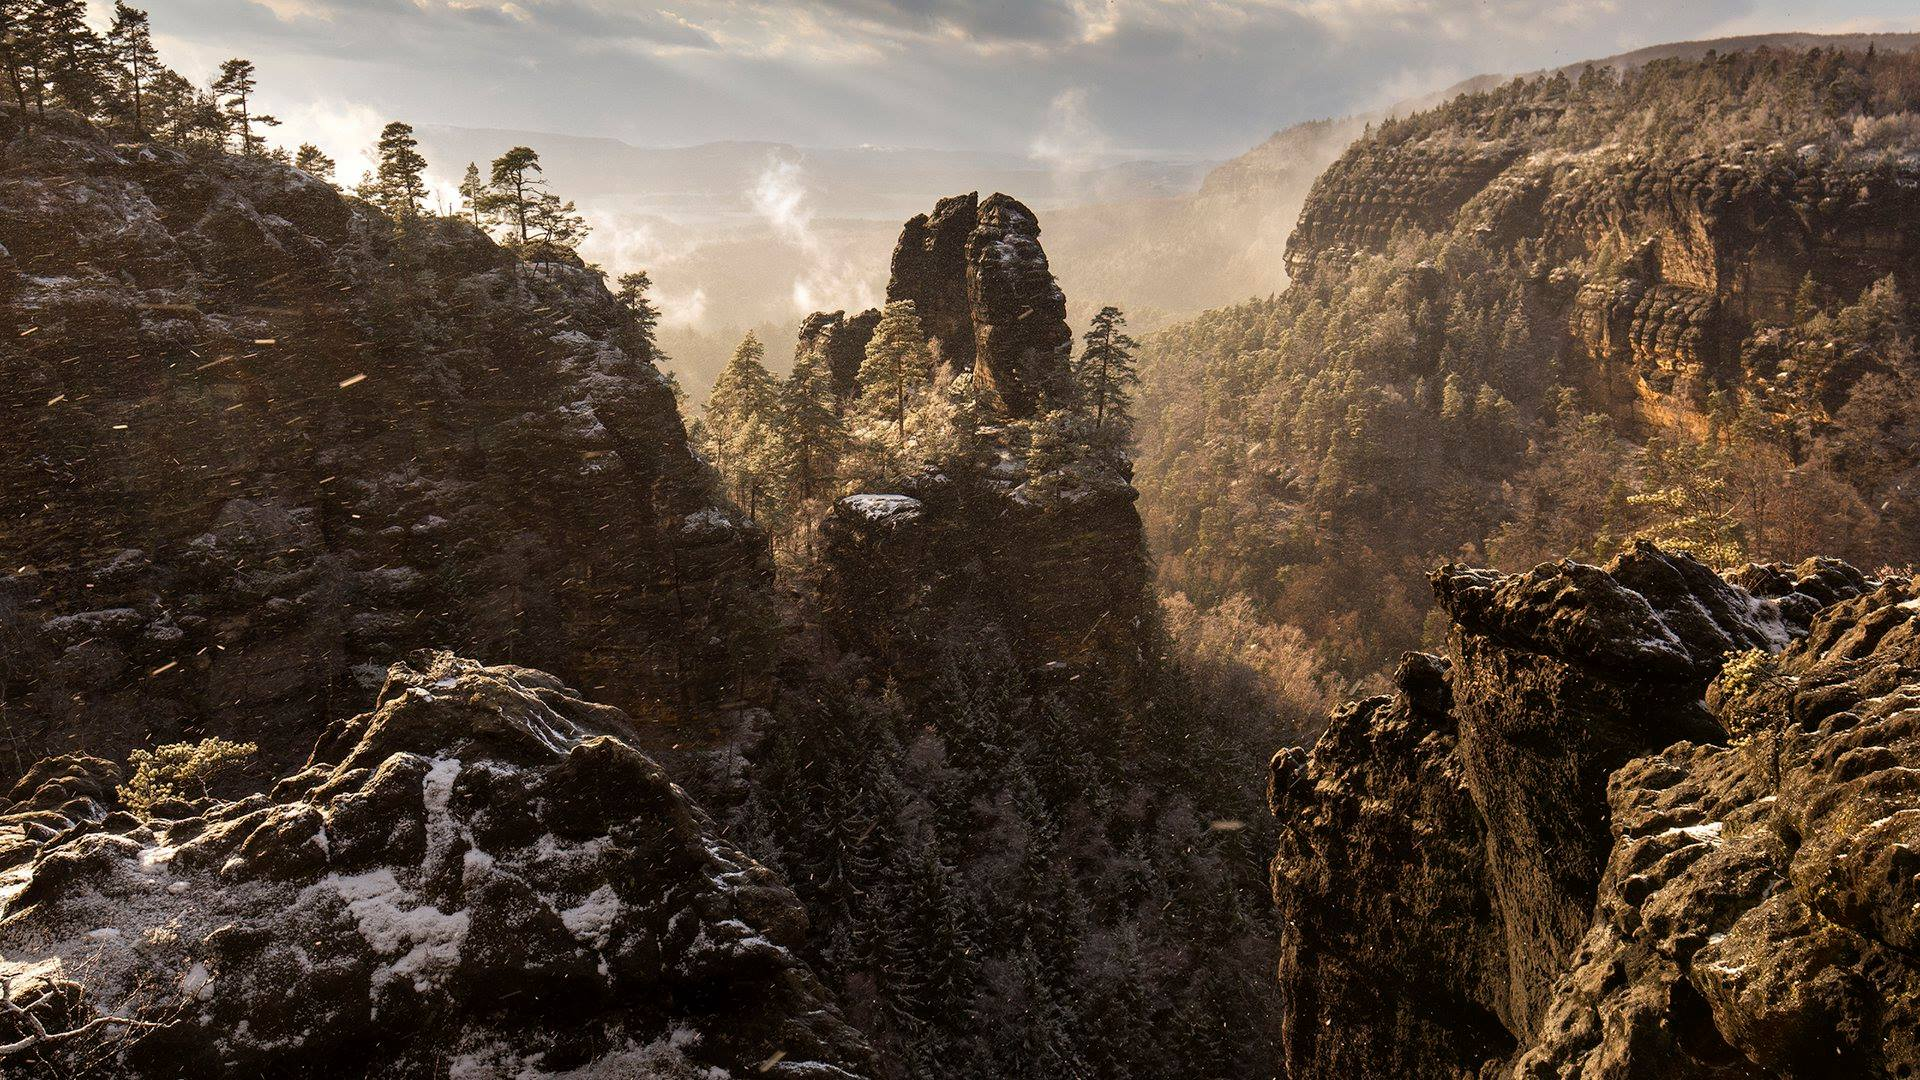 Narnia - shooting location Saxon Switzerland